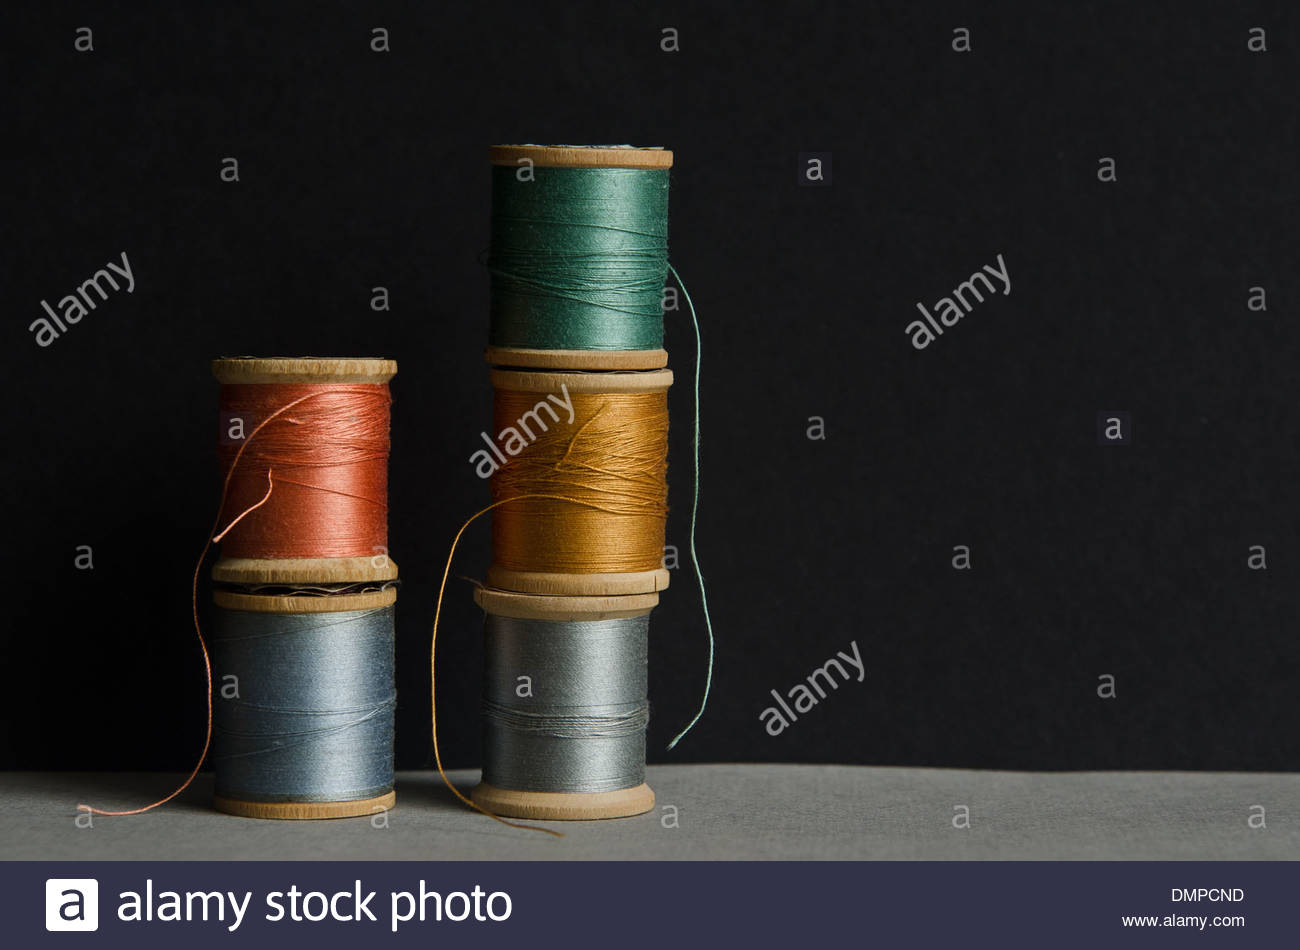 Wooden spools of colored thread stacked together with black background. - Stock Image